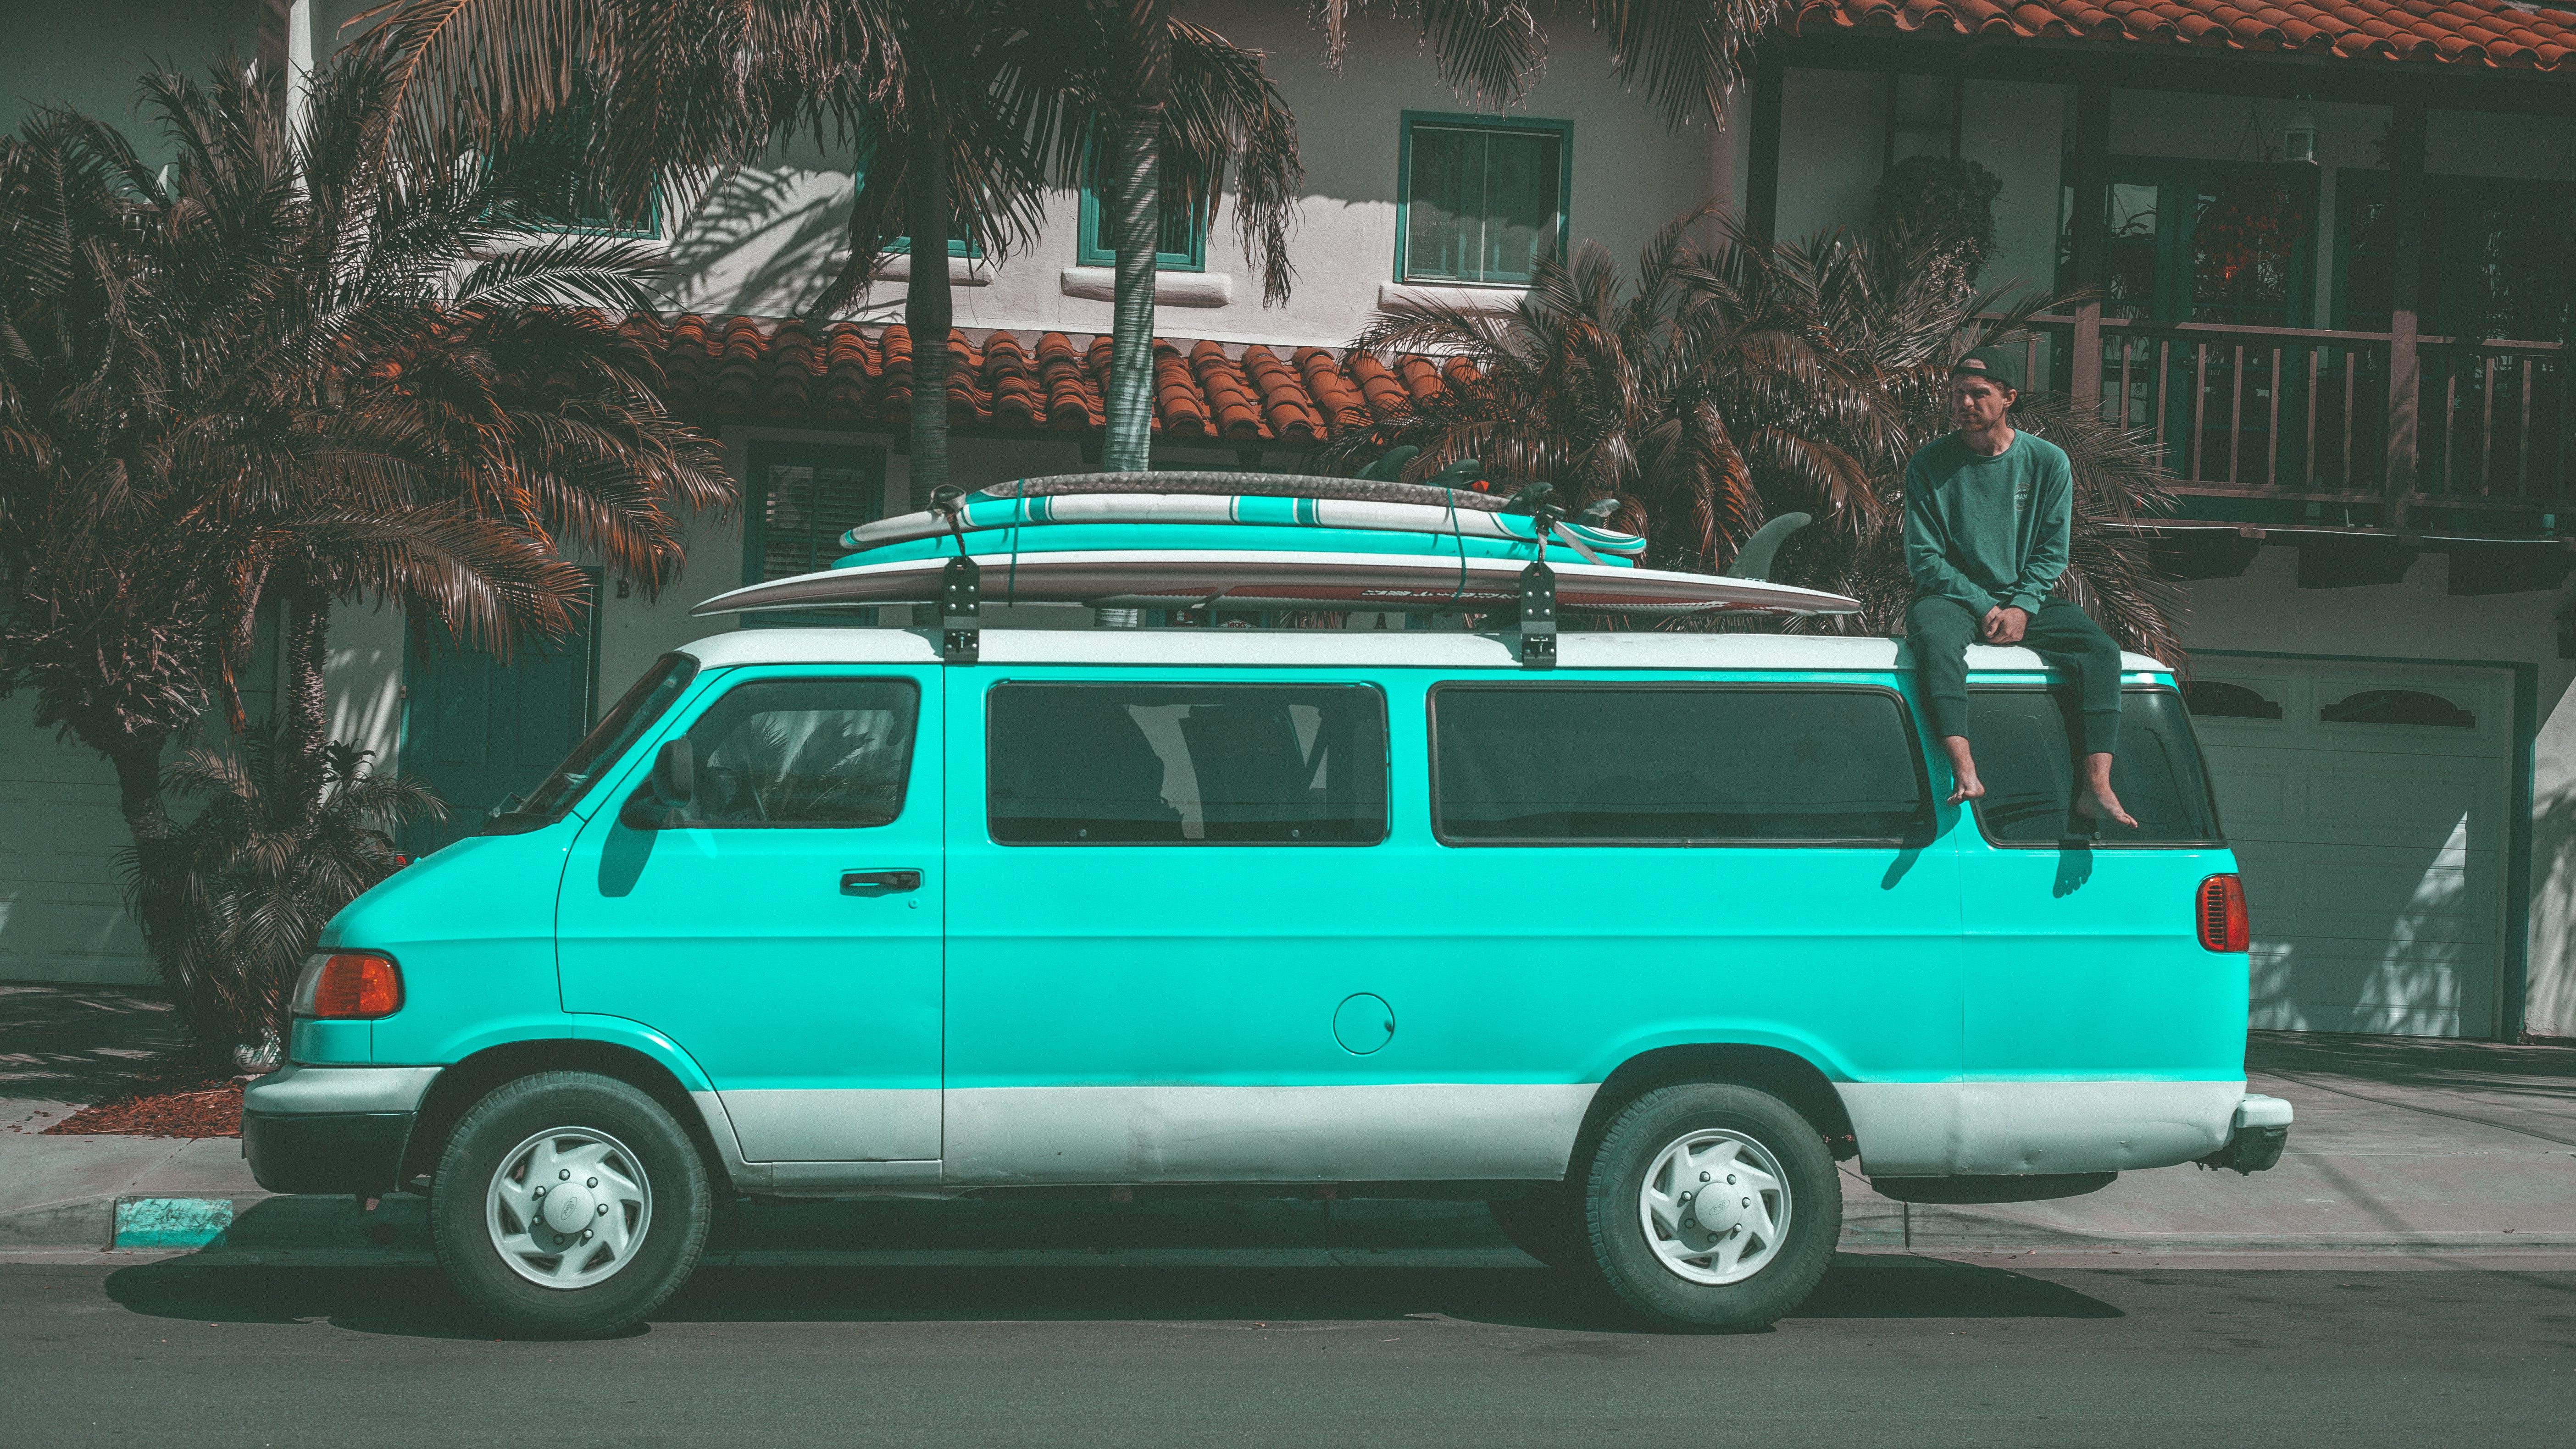 Man Sitting on Top of Teal Dodge Ram Van Parked Near House